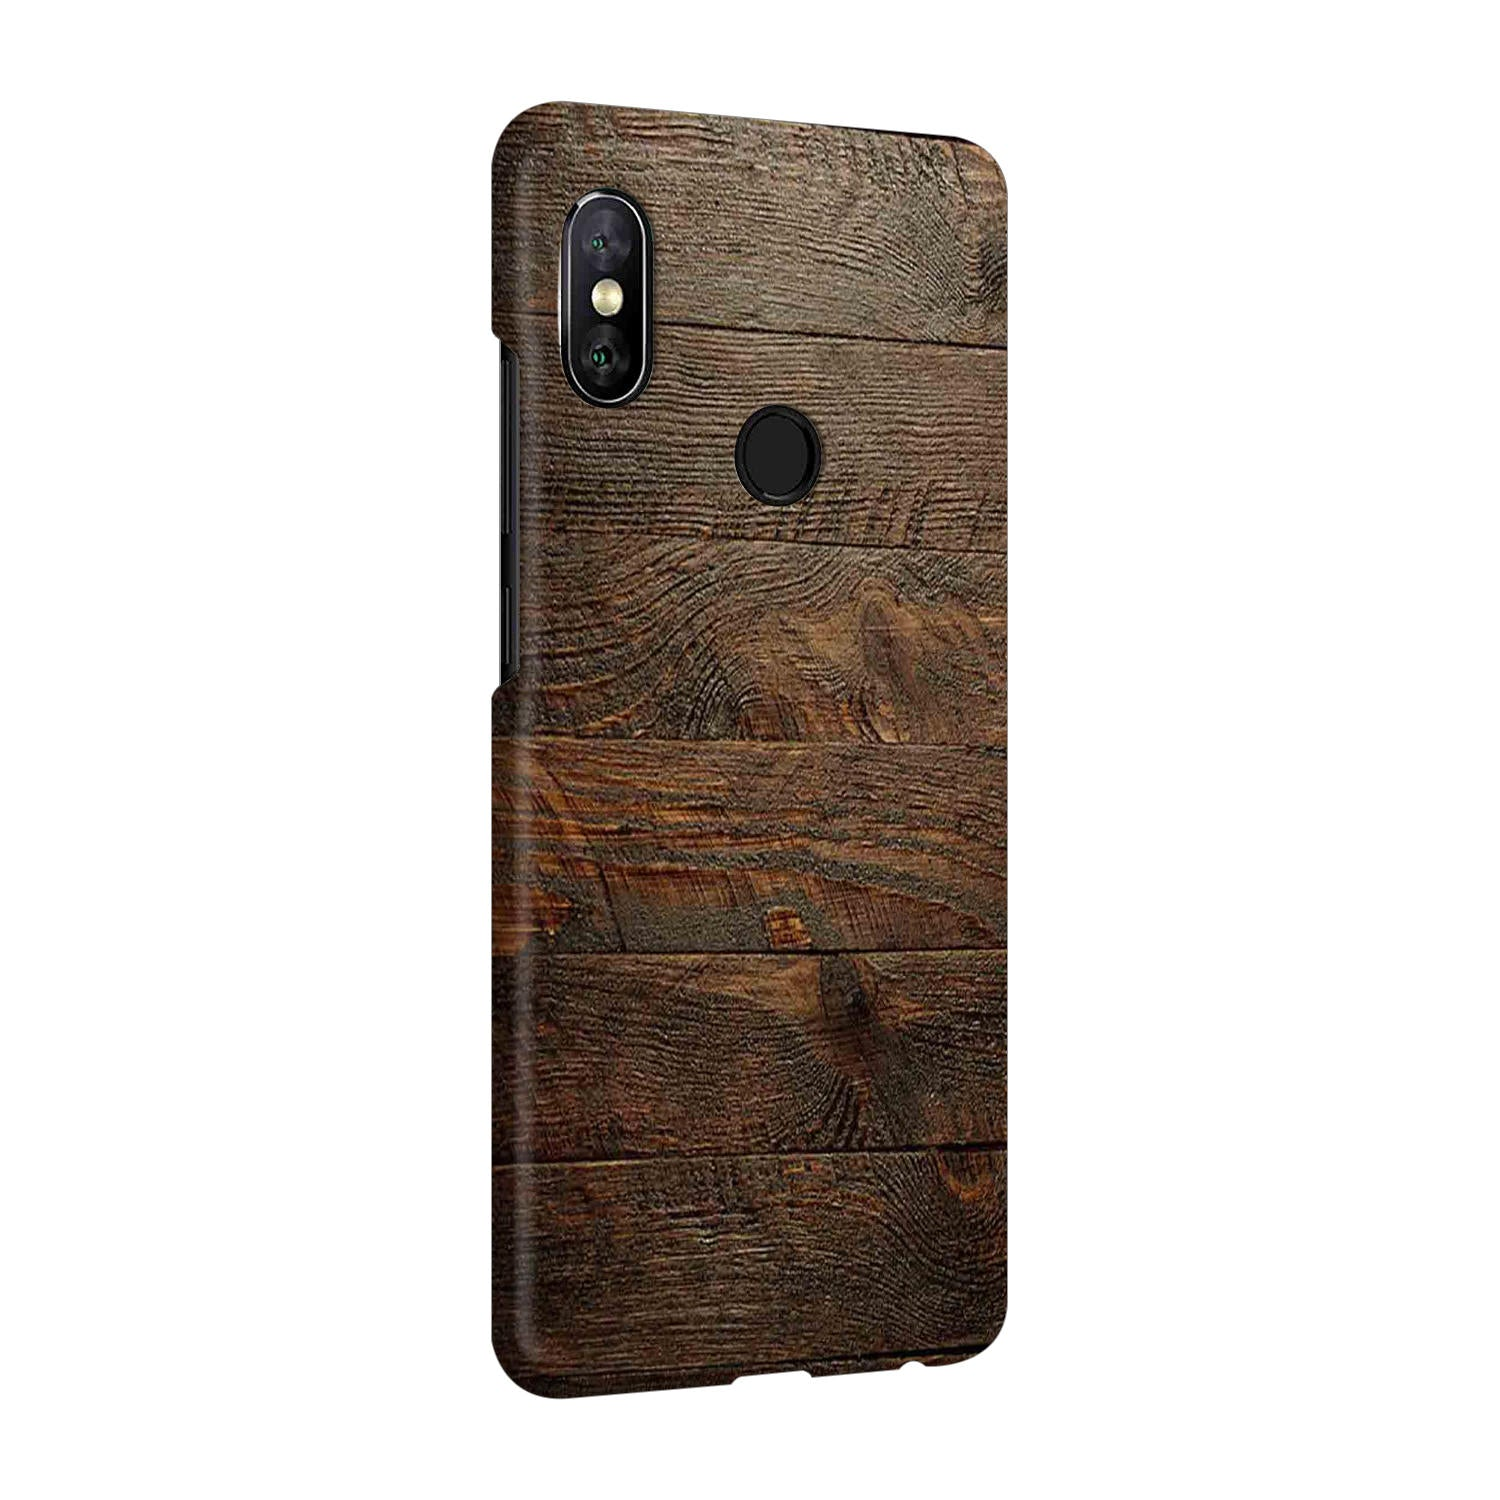 Wooden Wall Vivo V9 Mobile Cover Case - MADANYU